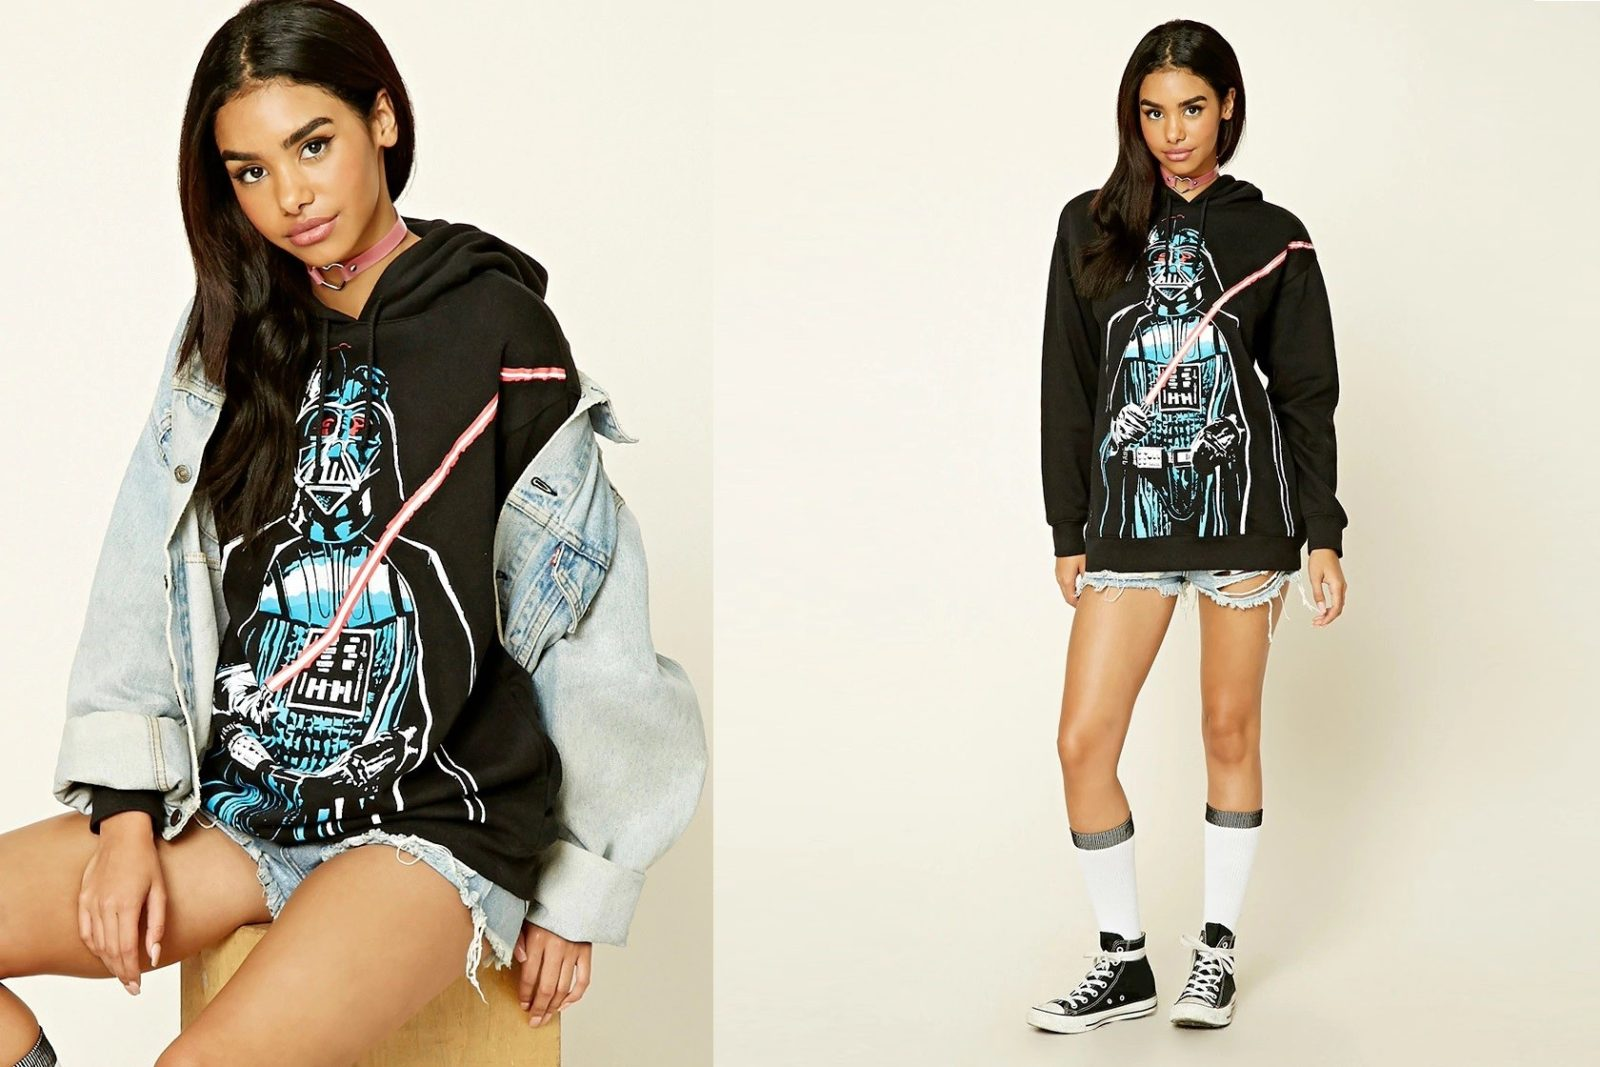 Women's Darth Vader hoodie at Forever 21